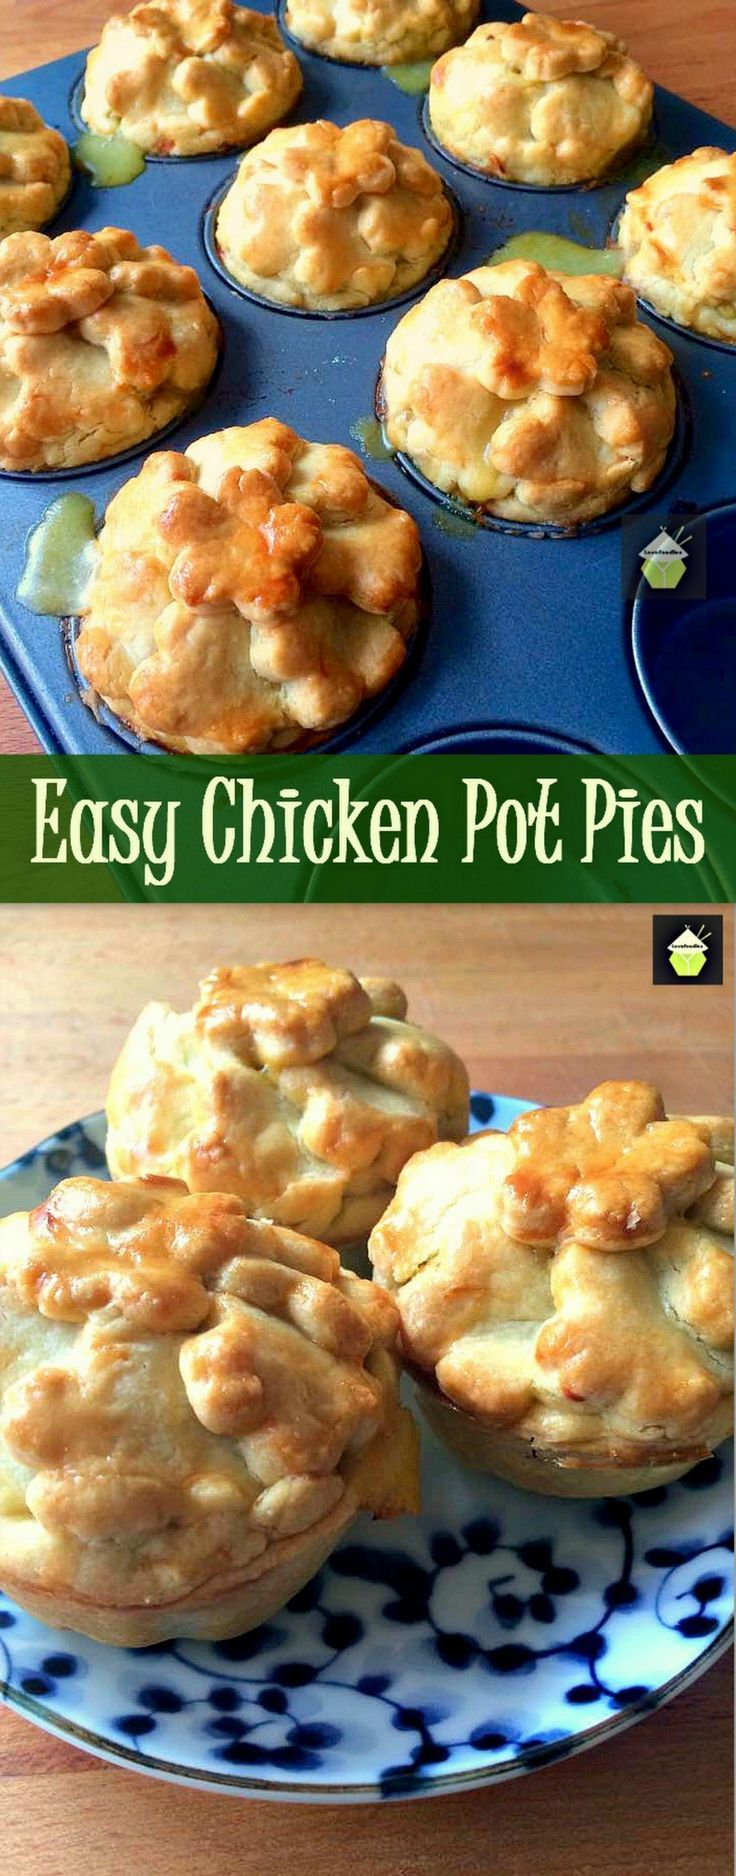 Easy Mini Chicken Pot Pies. Delicious little pies with crisp pastry. Freezer friendly and great for parties too! #potpie #chicken #easyrecipe